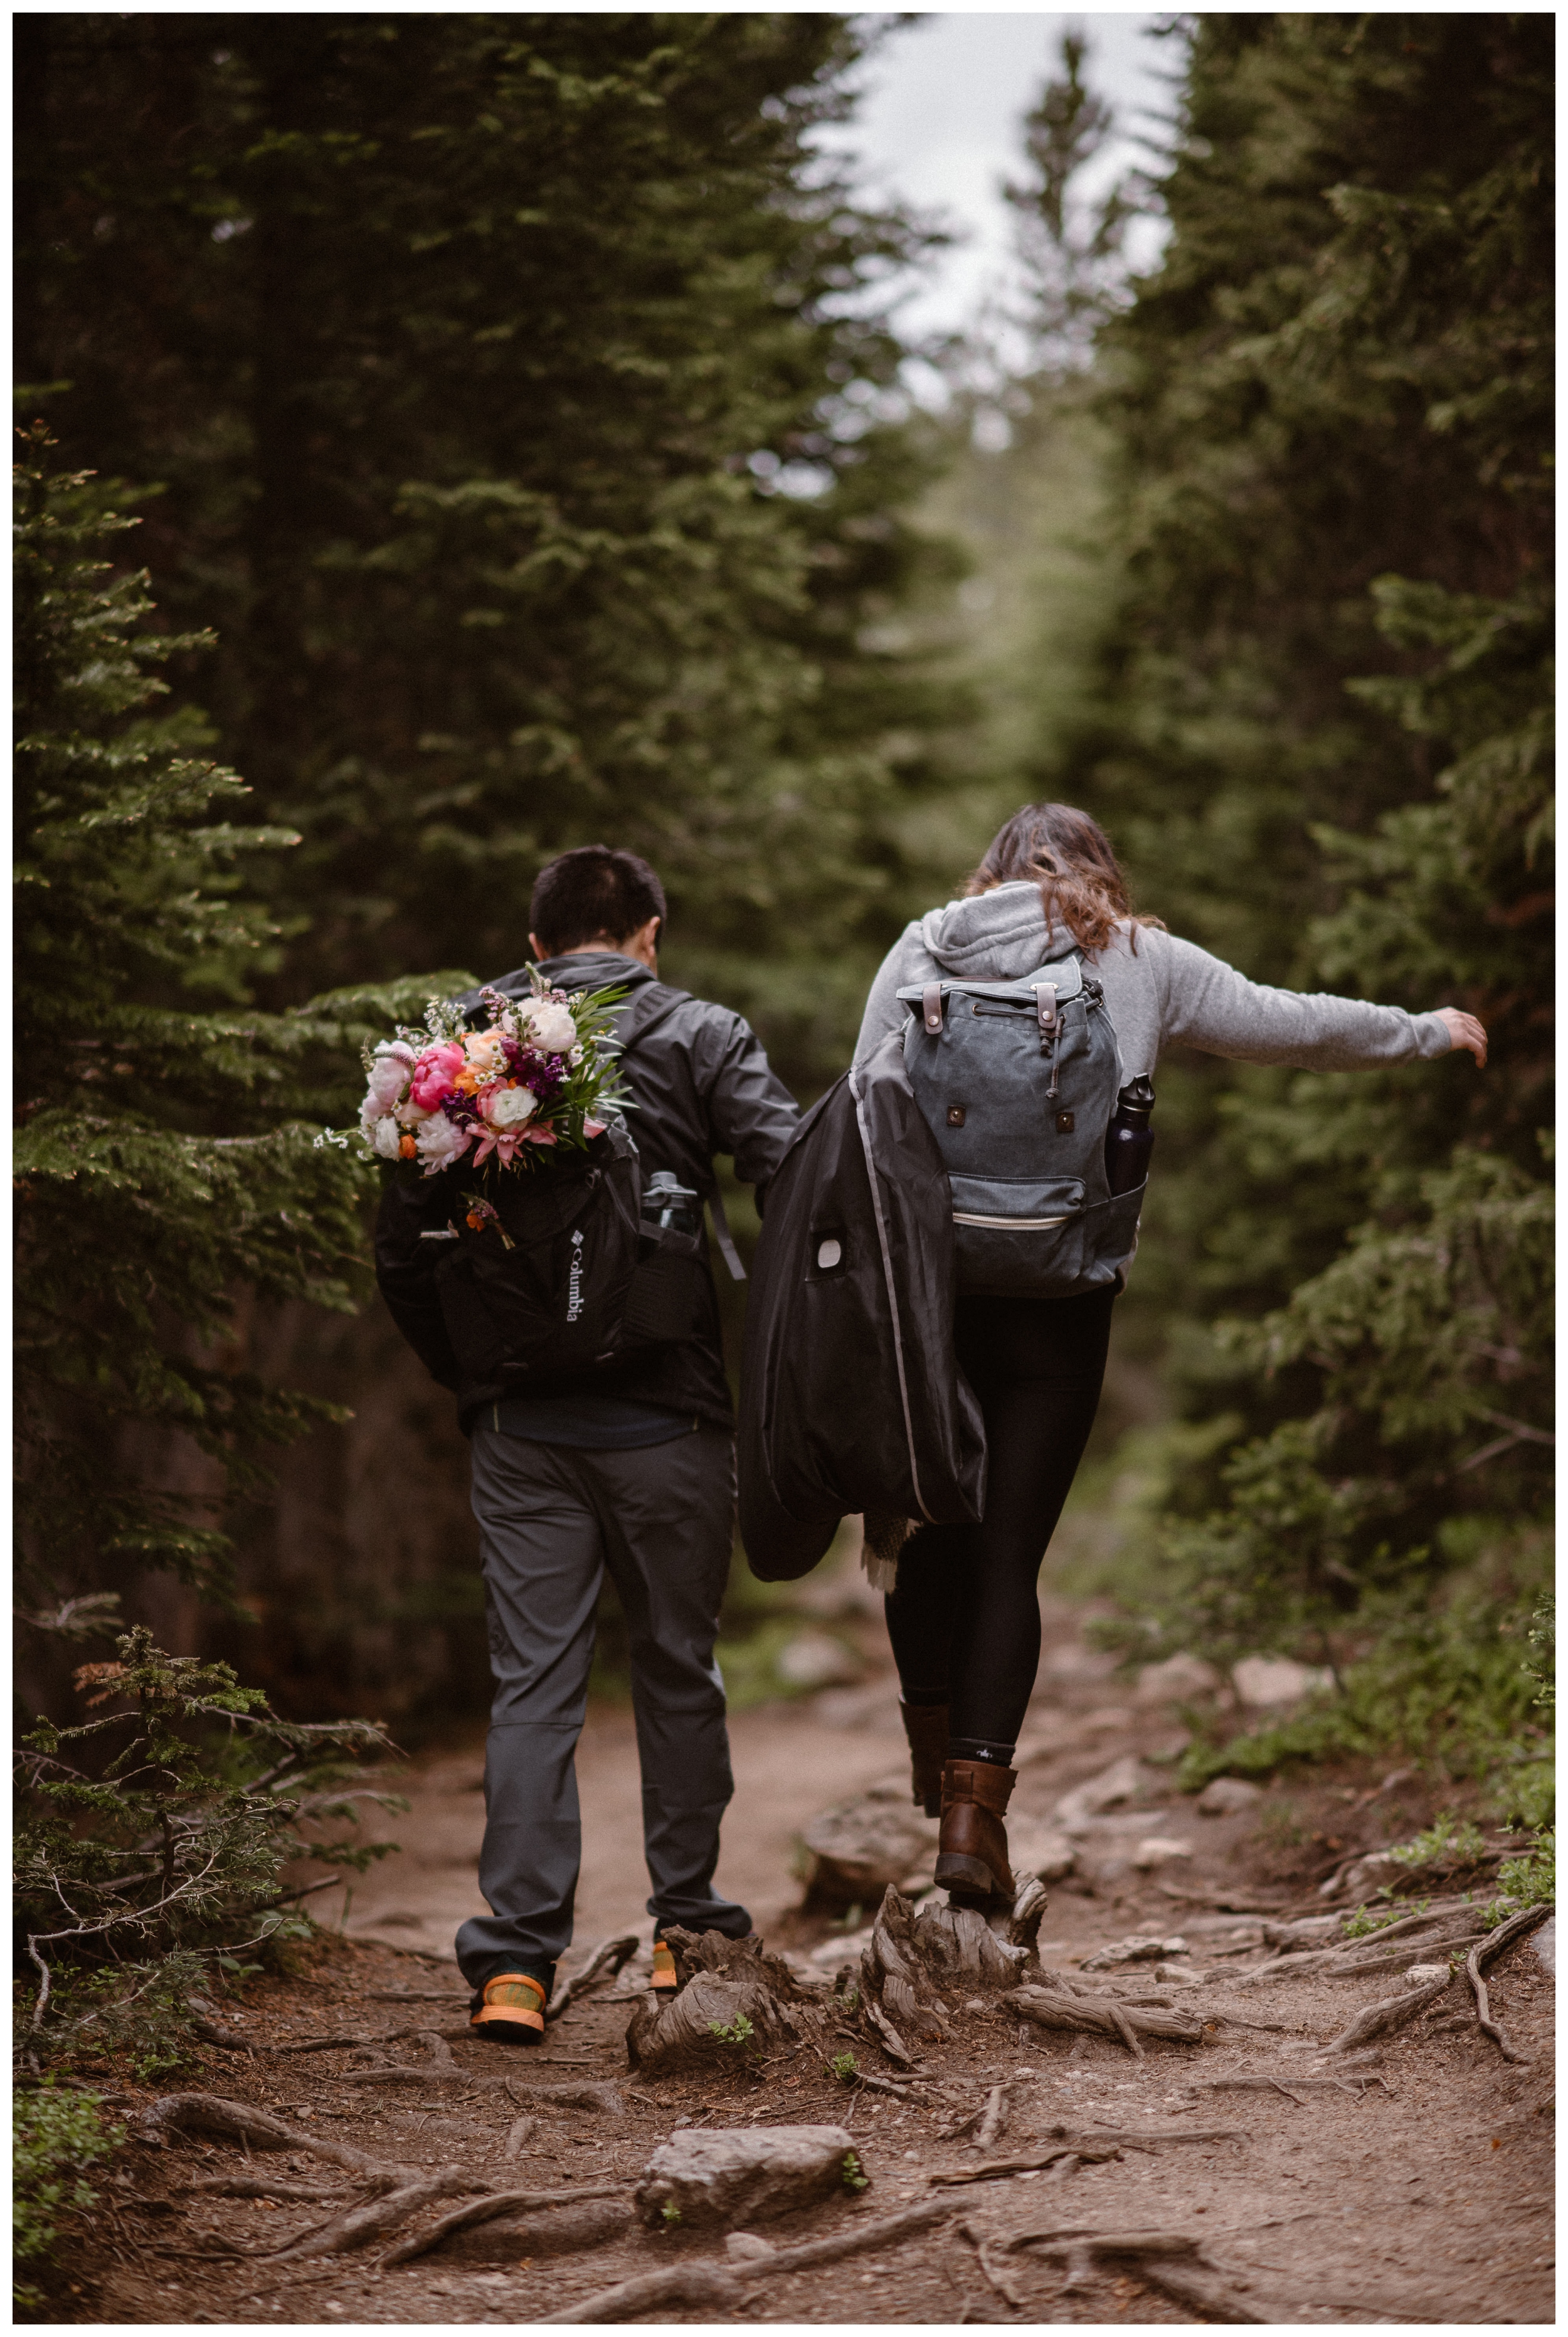 Leslie and Jinson continue to hike up the trail towards high alpine lake Gem Lake in Colorado's Rocky Mountain for their elopement ceremony. Photo by Maddie Mae Photo, Adventure Instead.